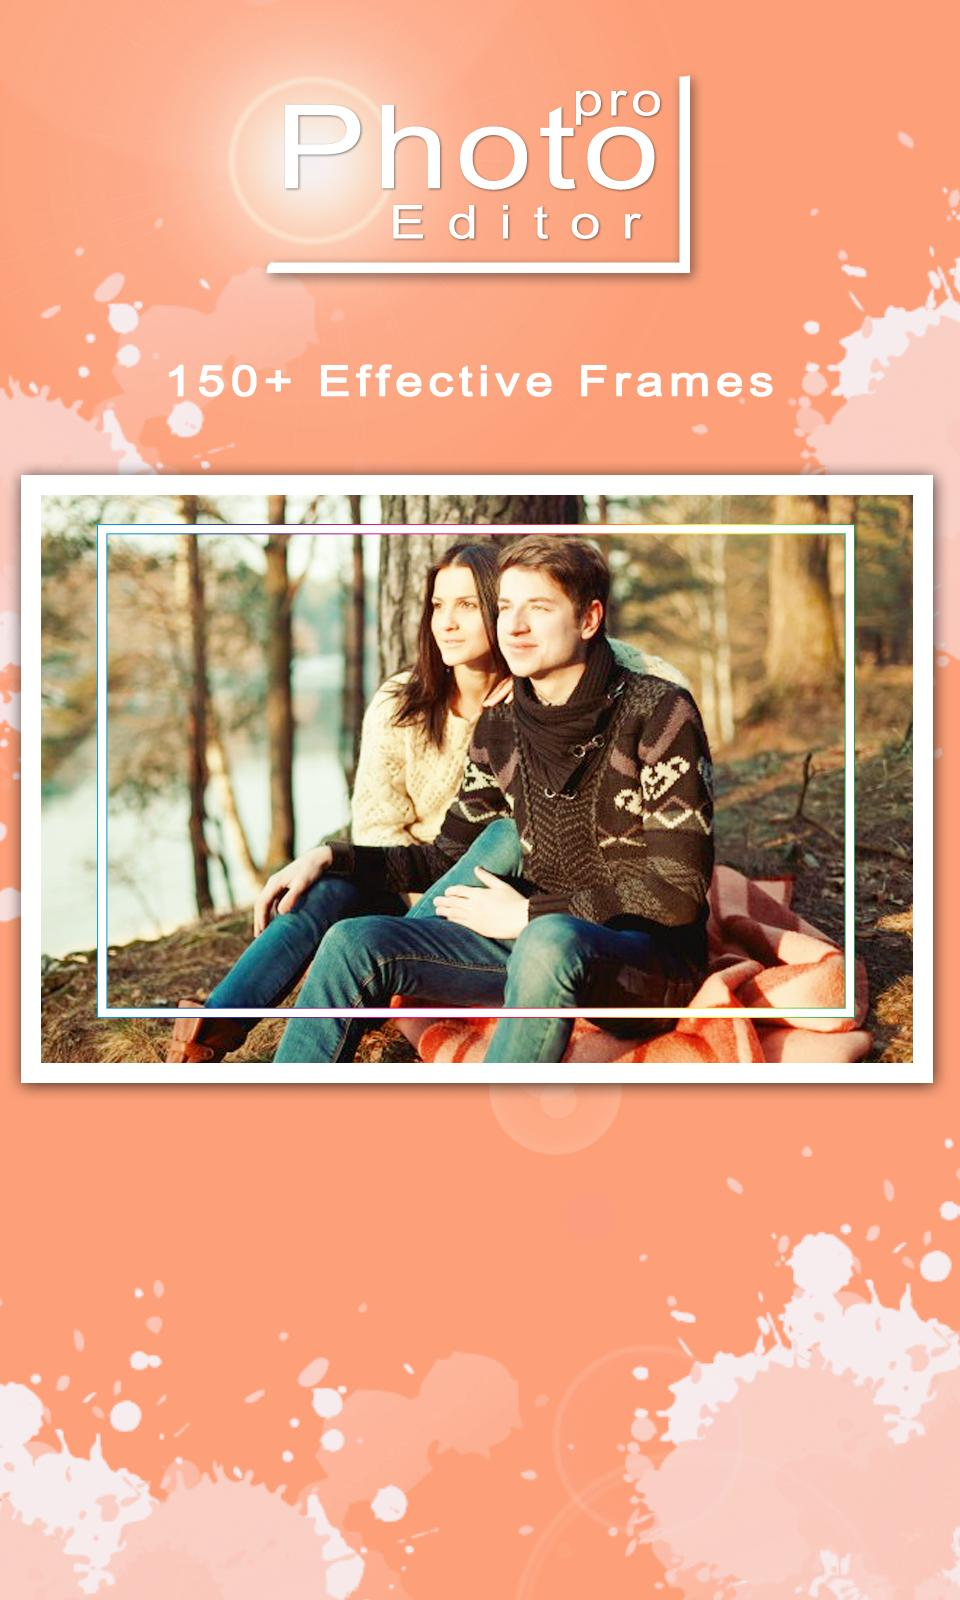 Jio Photo Editor Pro for Android - APK Download